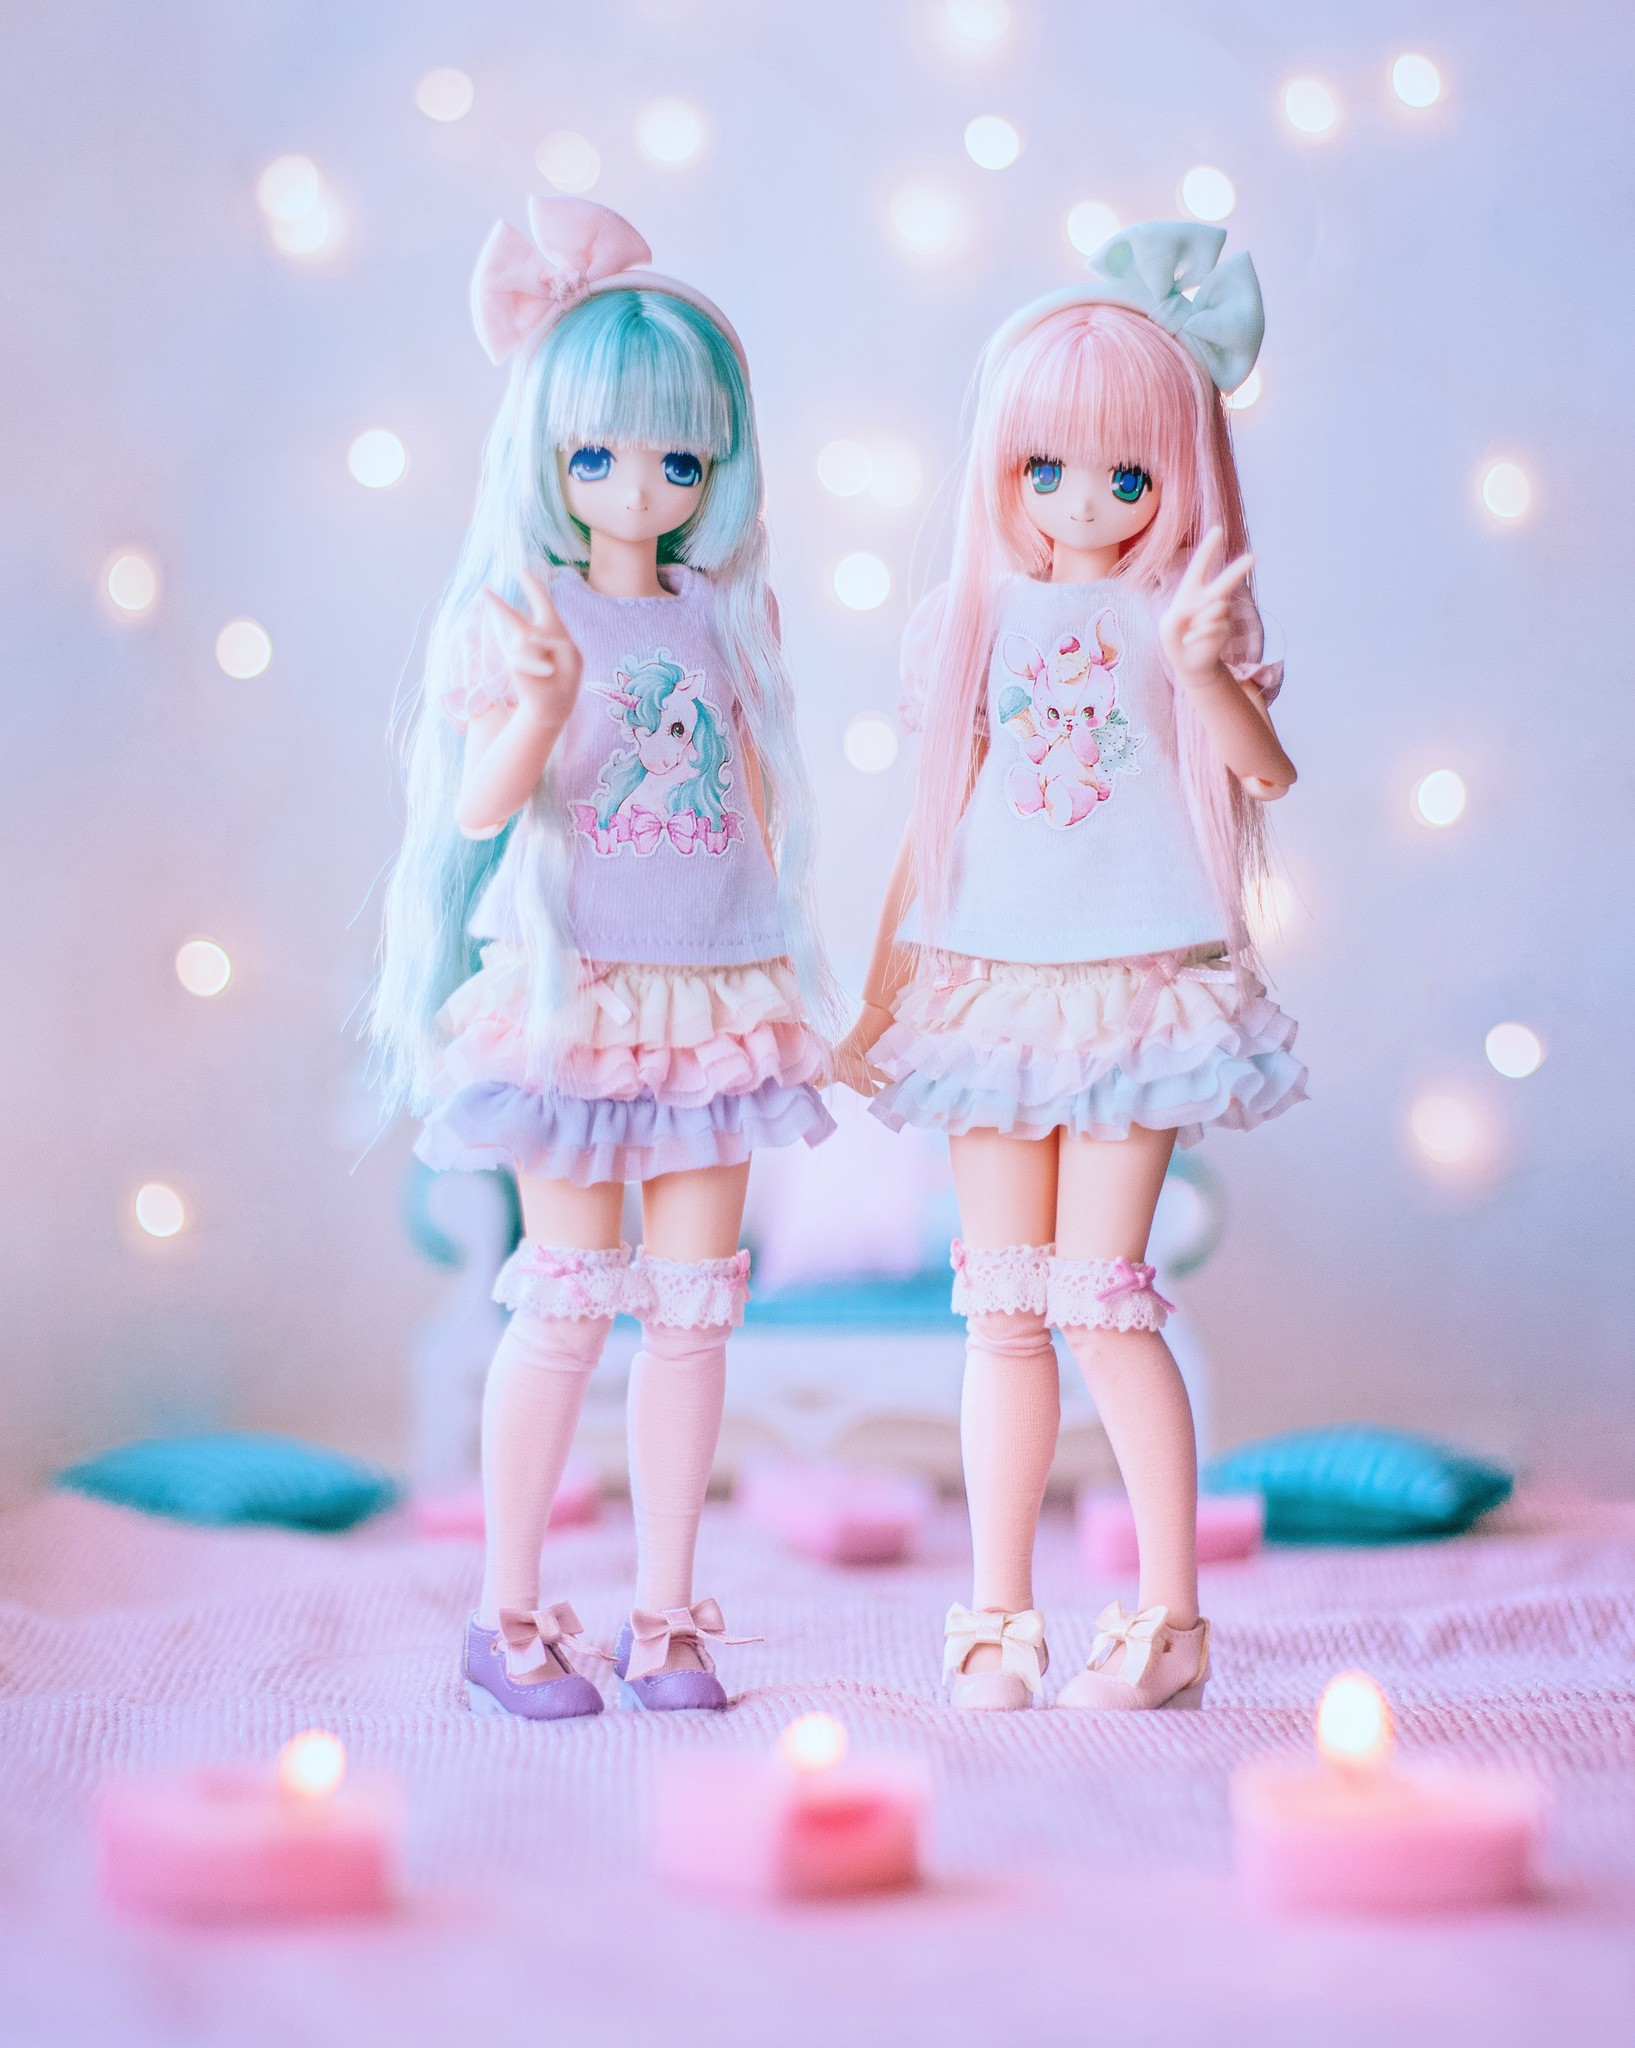 https://static.myfigurecollection.net/upload/pictures/2020/02/20/2392579.jpeg